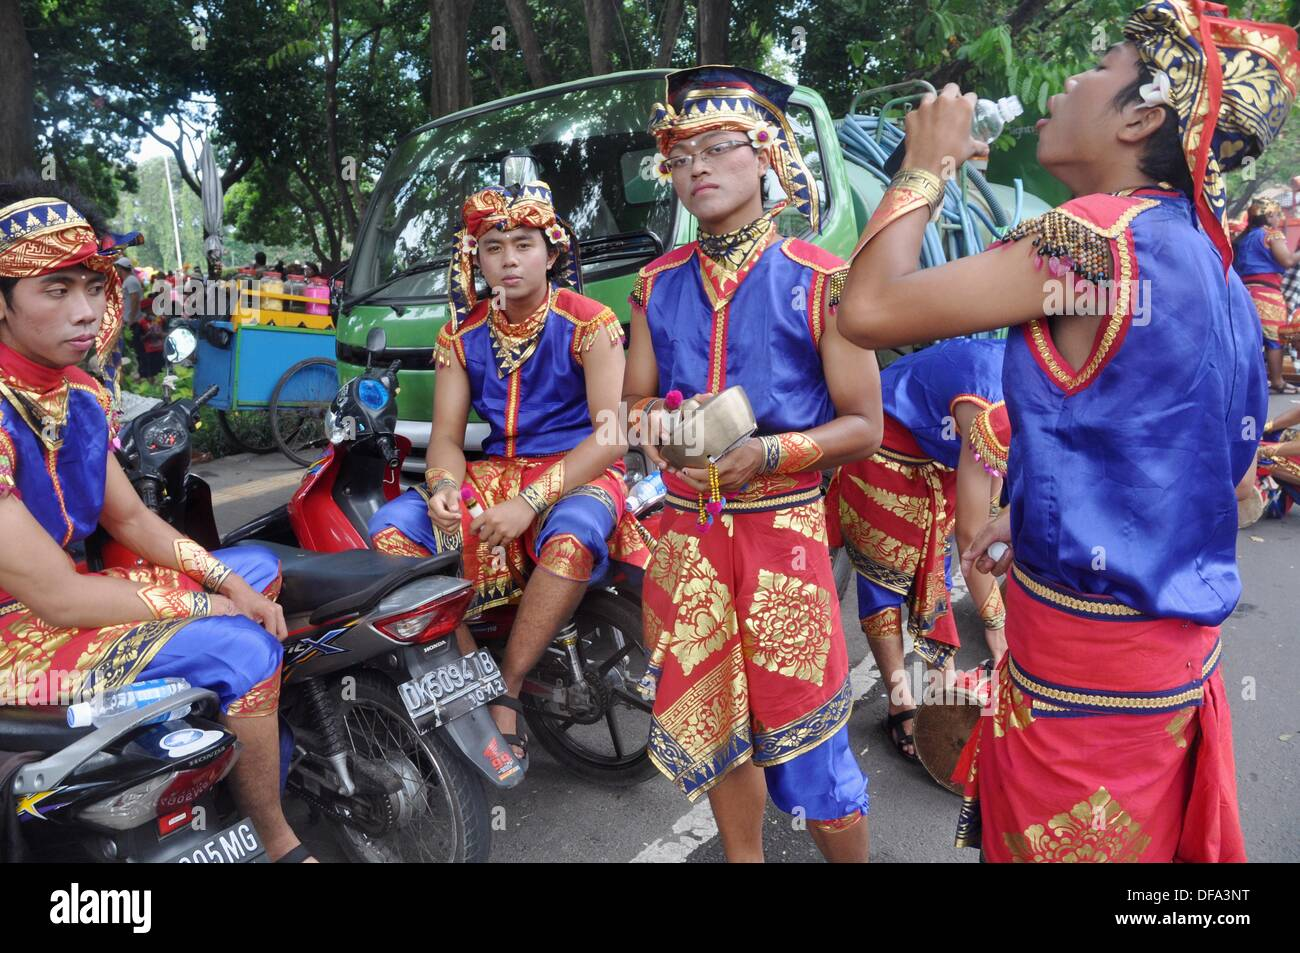 Denpasar (Bali, Indonesia): Balinese adolescents at the Bali Arts Festival's opening - Stock Image